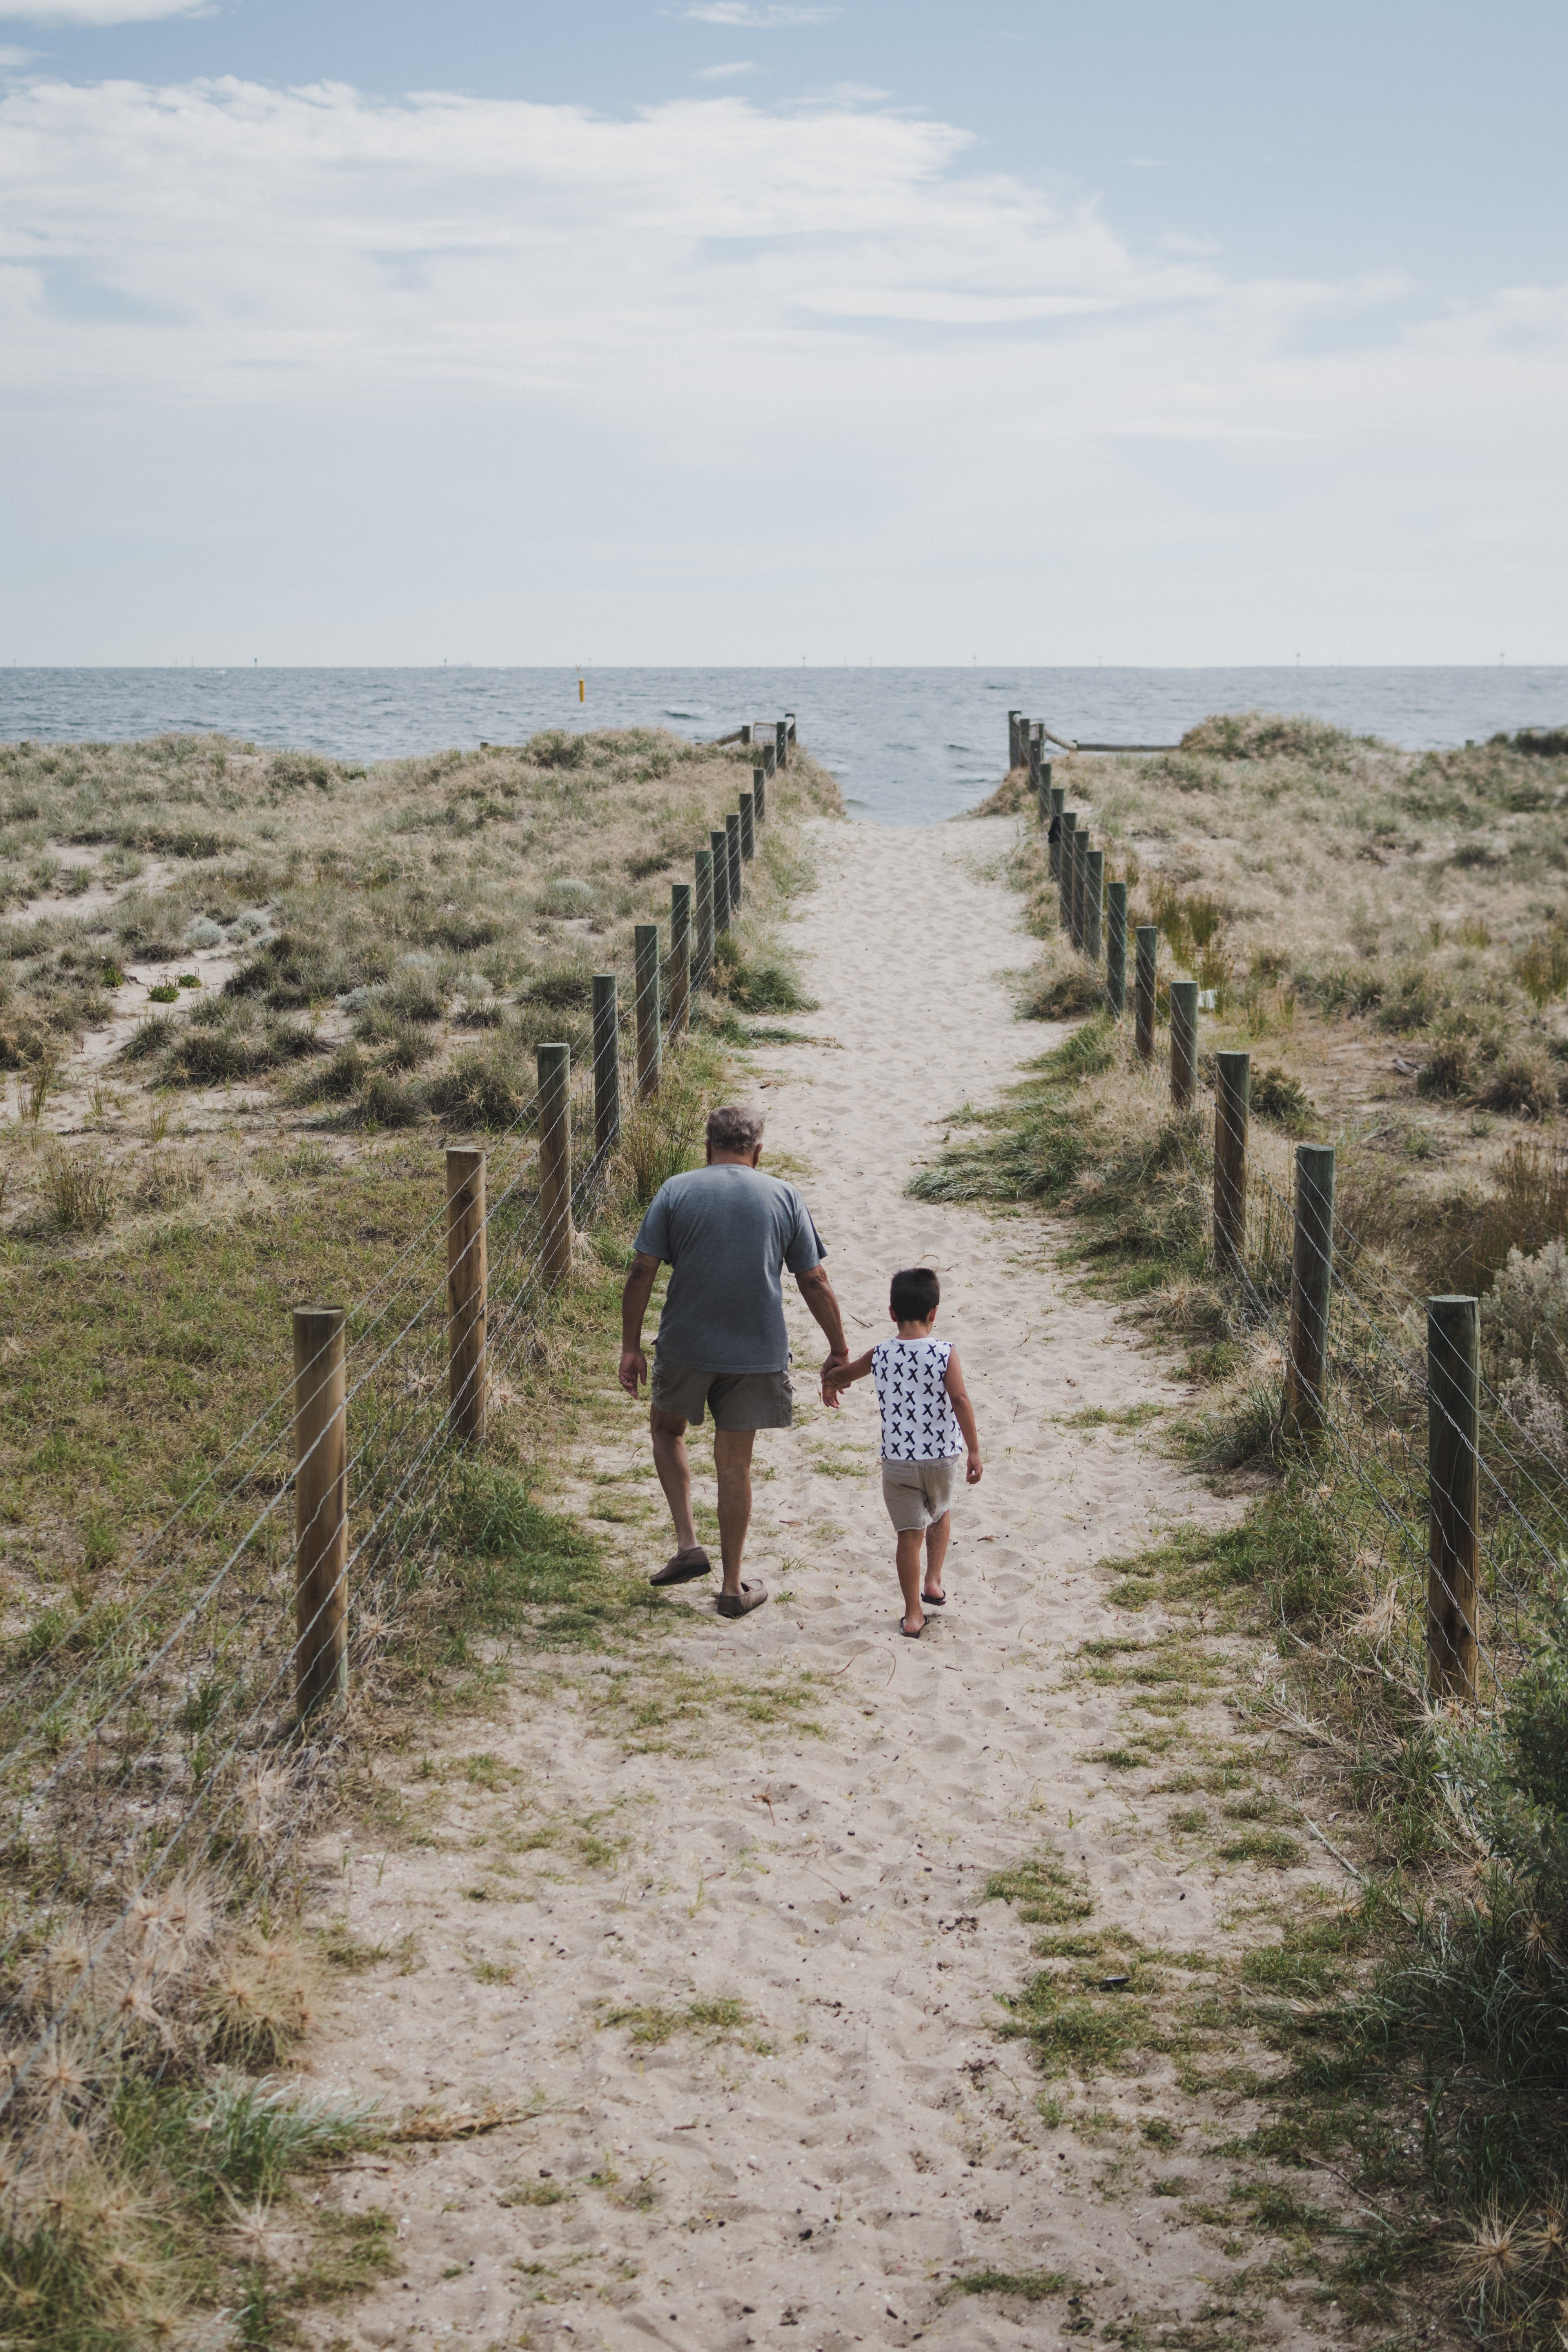 A man and a child taking a walk | Source: Unsplash.com